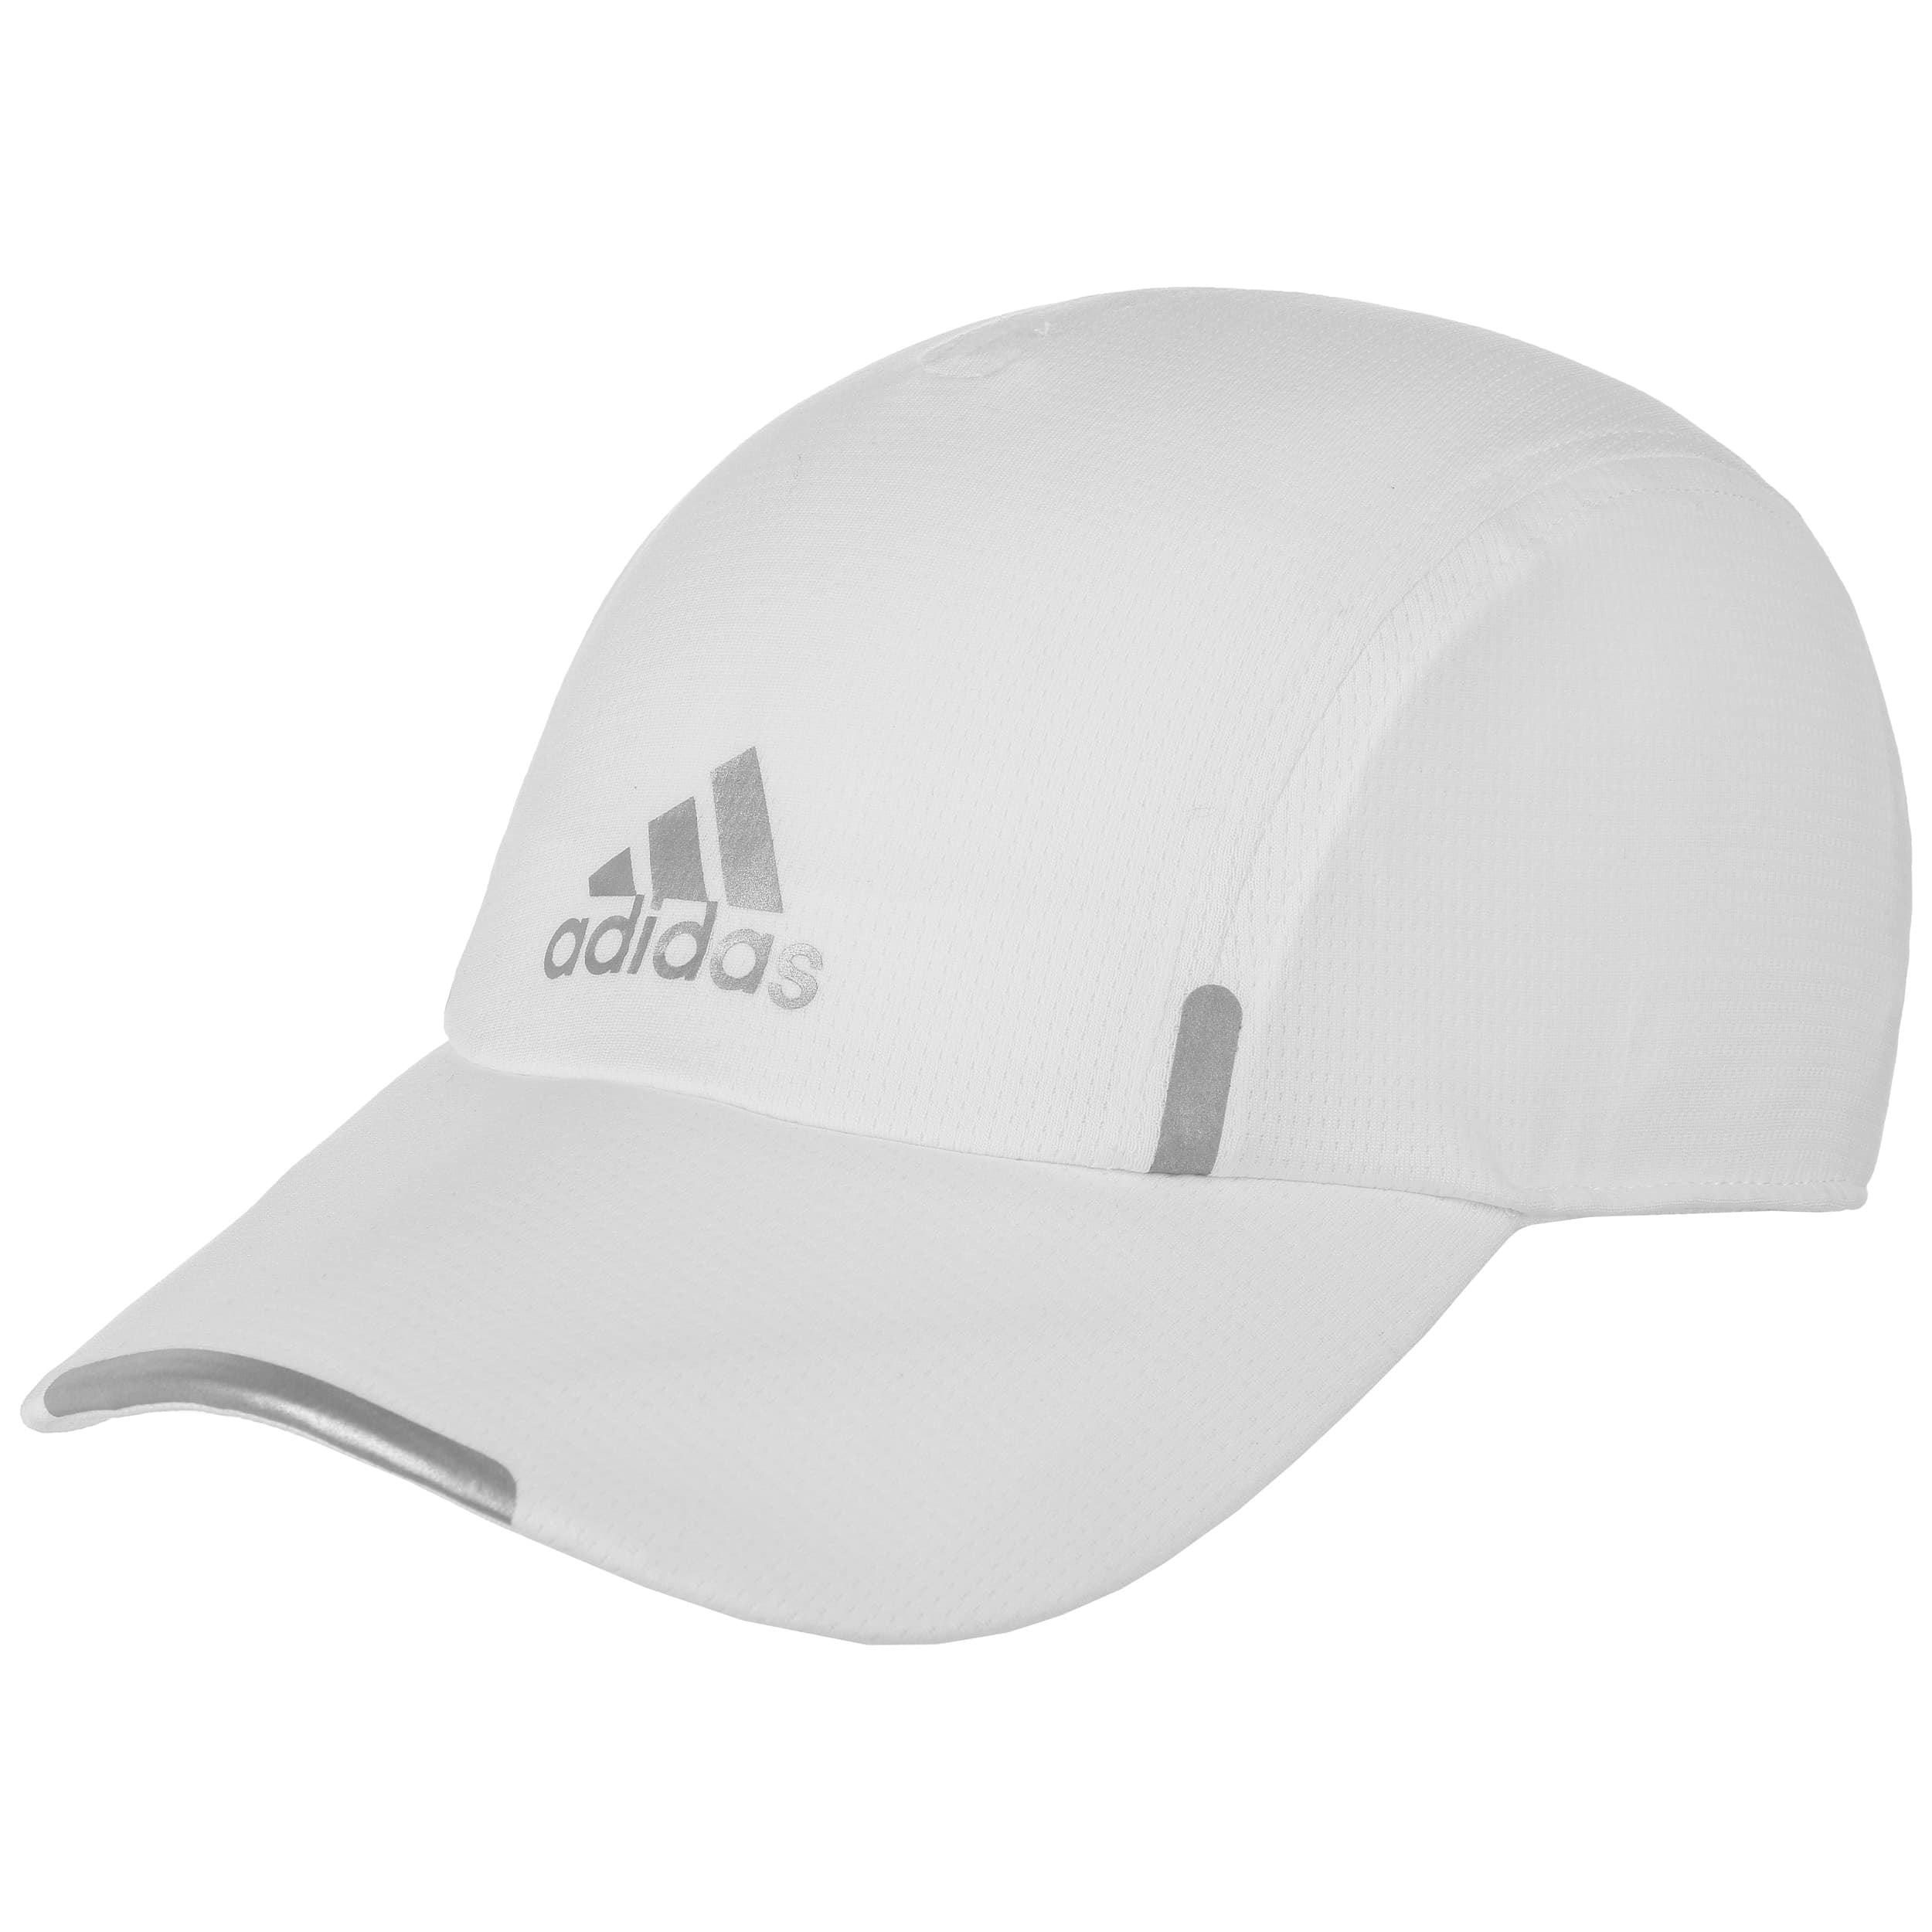 d8a935febd4 ... closeout climacool running strapback cap by adidas 2 1dc56 ea8d1 ...